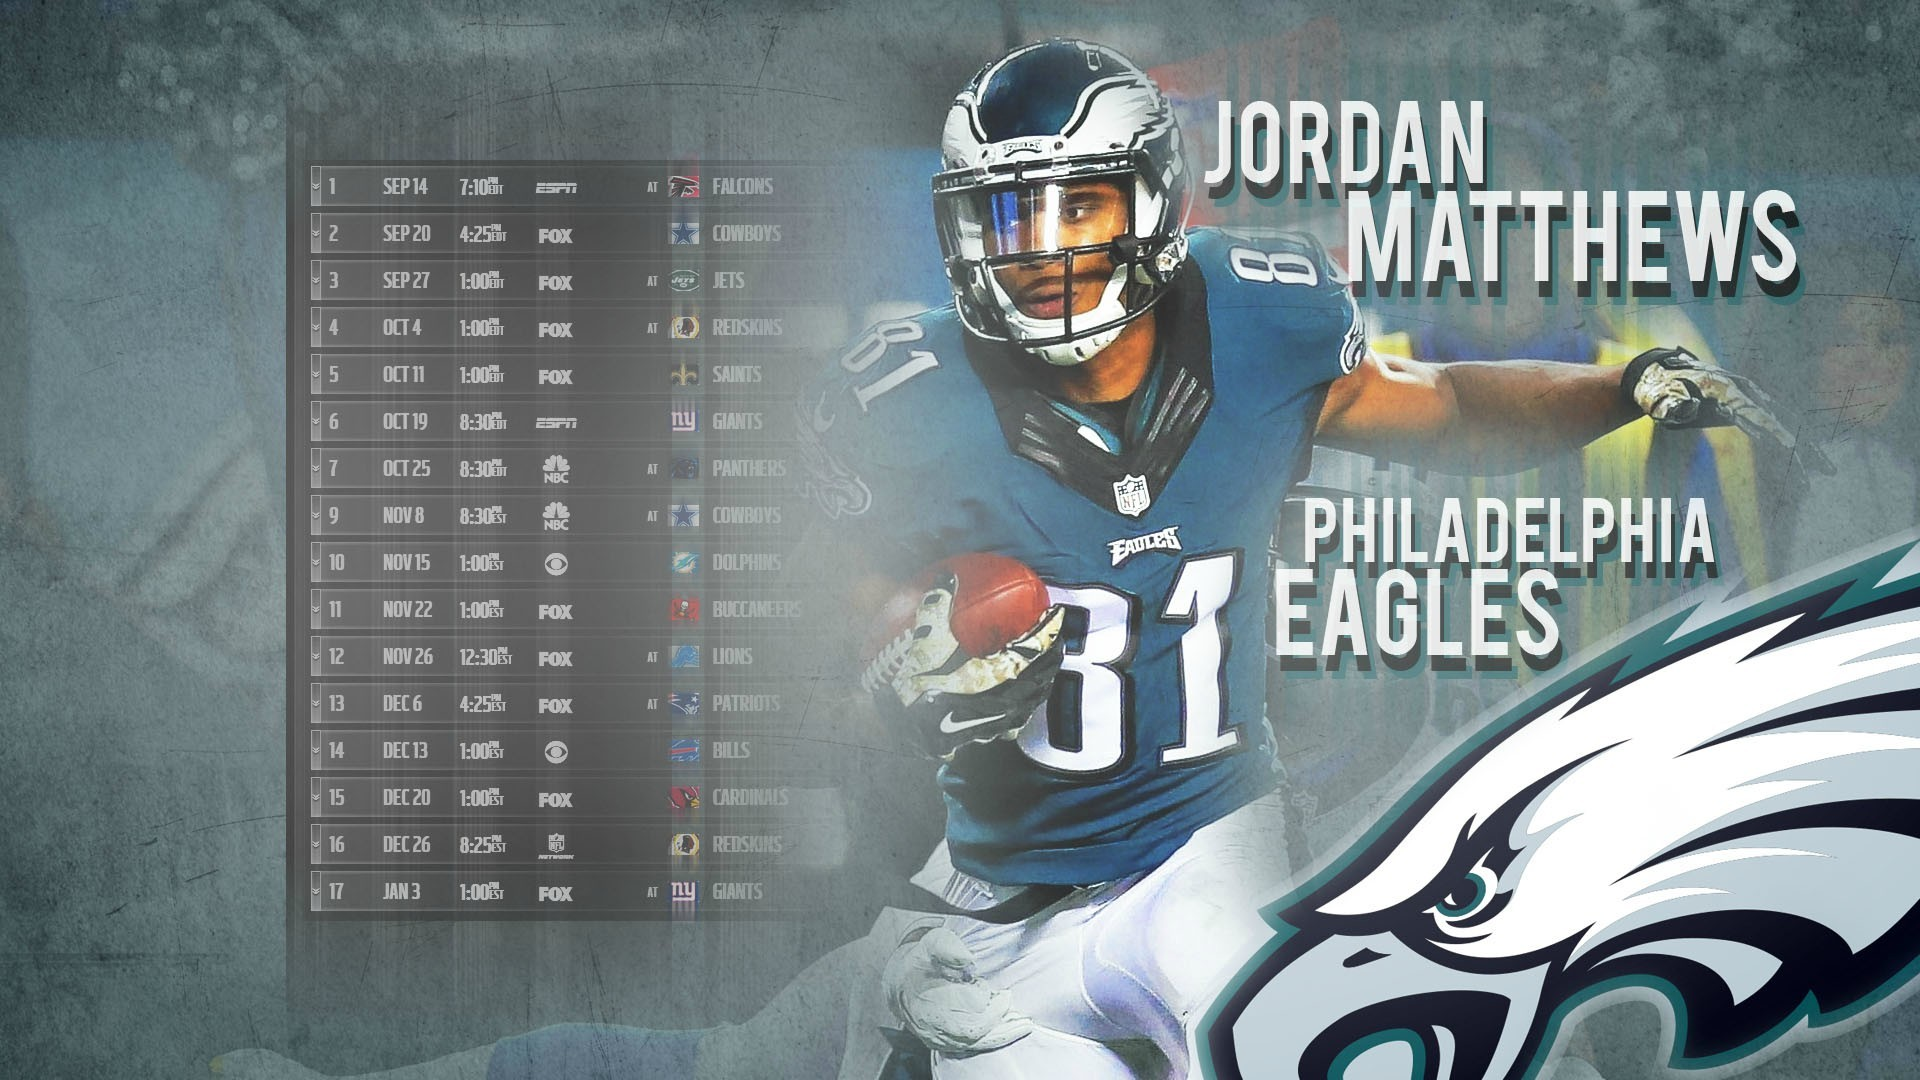 1920x1080 Matthews schedule wallpaper 2.0 ...